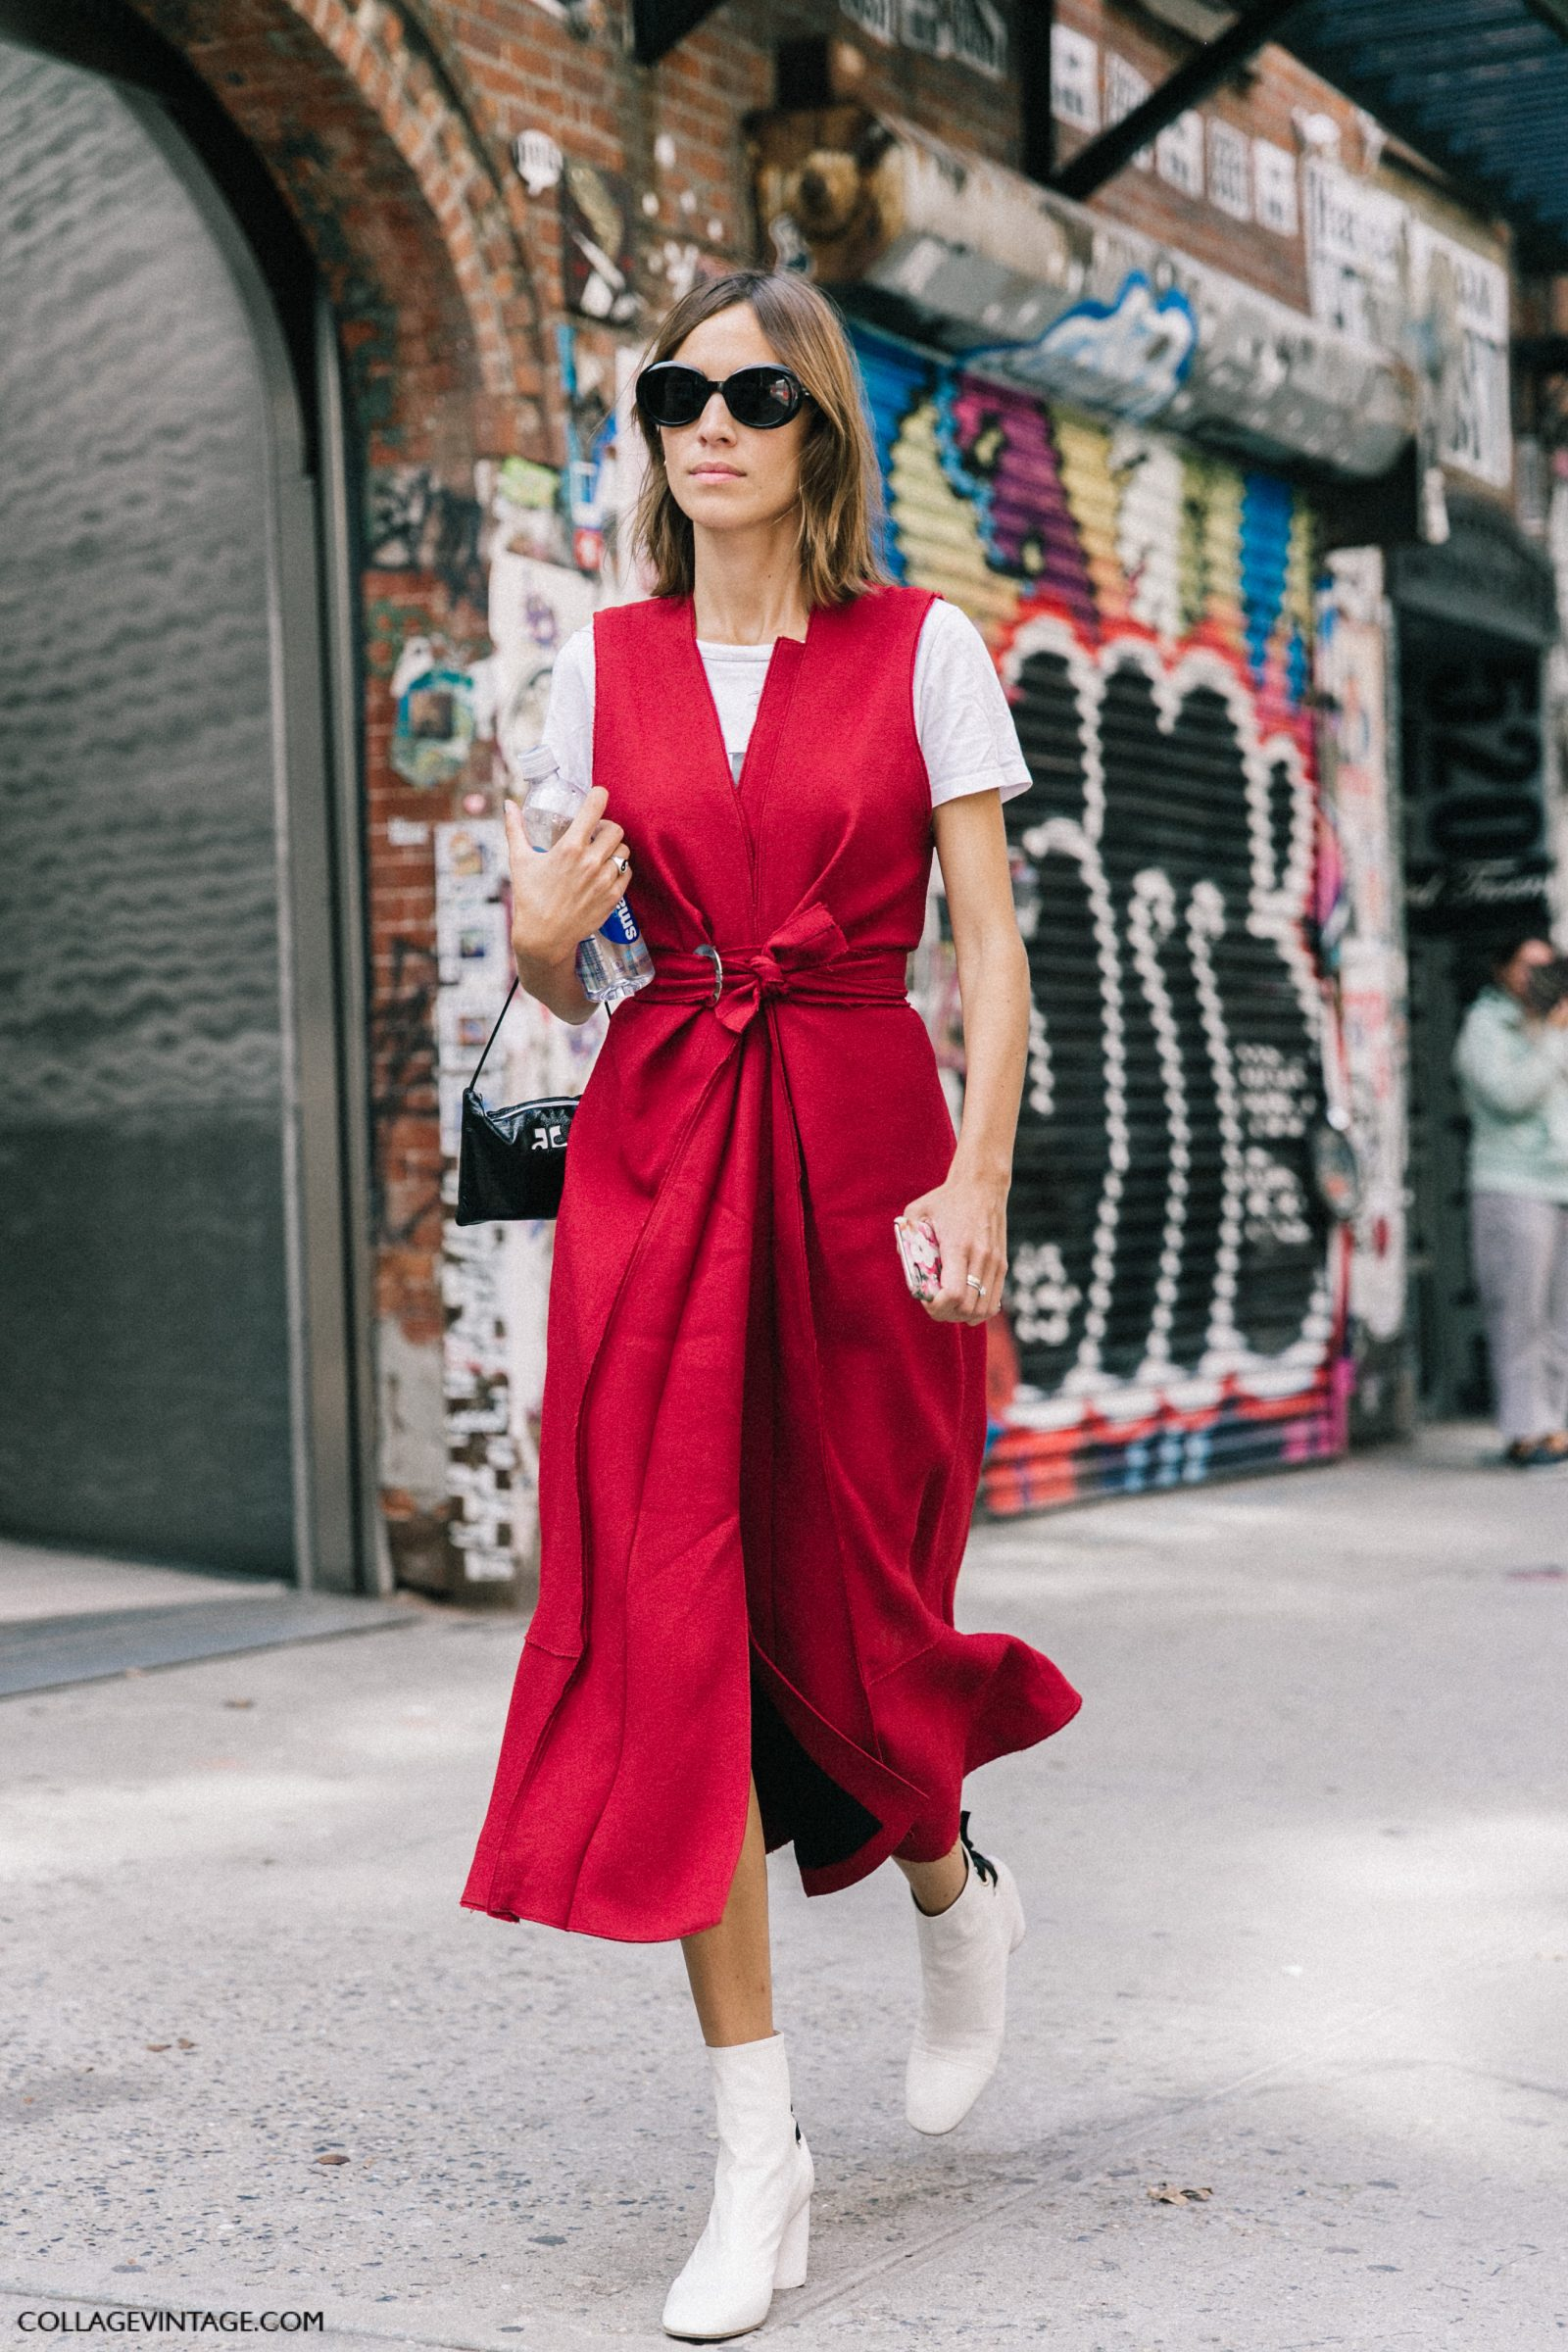 nyfw-new_york_fashion_week_ss17-street_style-outfits-collage_vintage-vintage-phillip_lim-the-row-proenza_schouler-rossie_aussolin-267-1600x2400